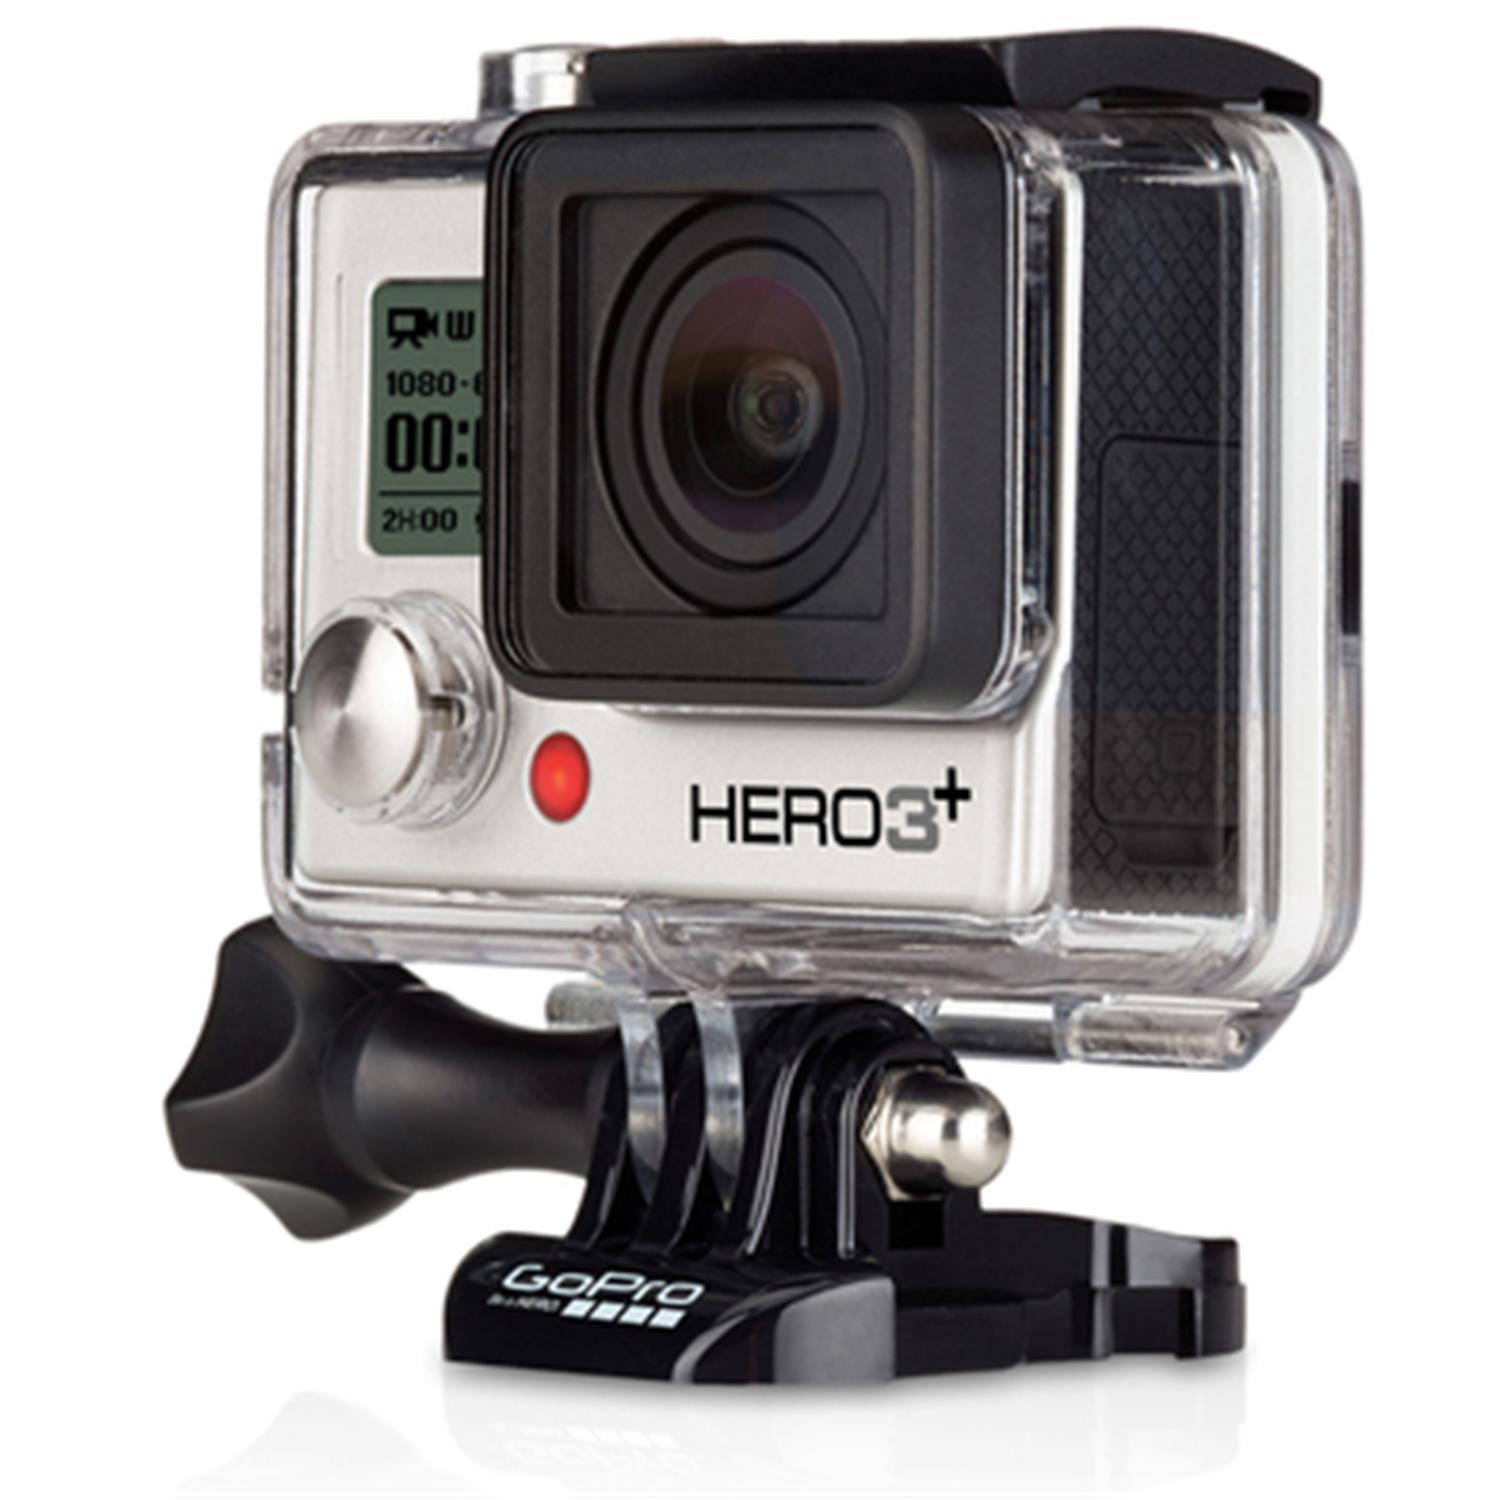 gopro hero3 silver edition camera evo. Black Bedroom Furniture Sets. Home Design Ideas